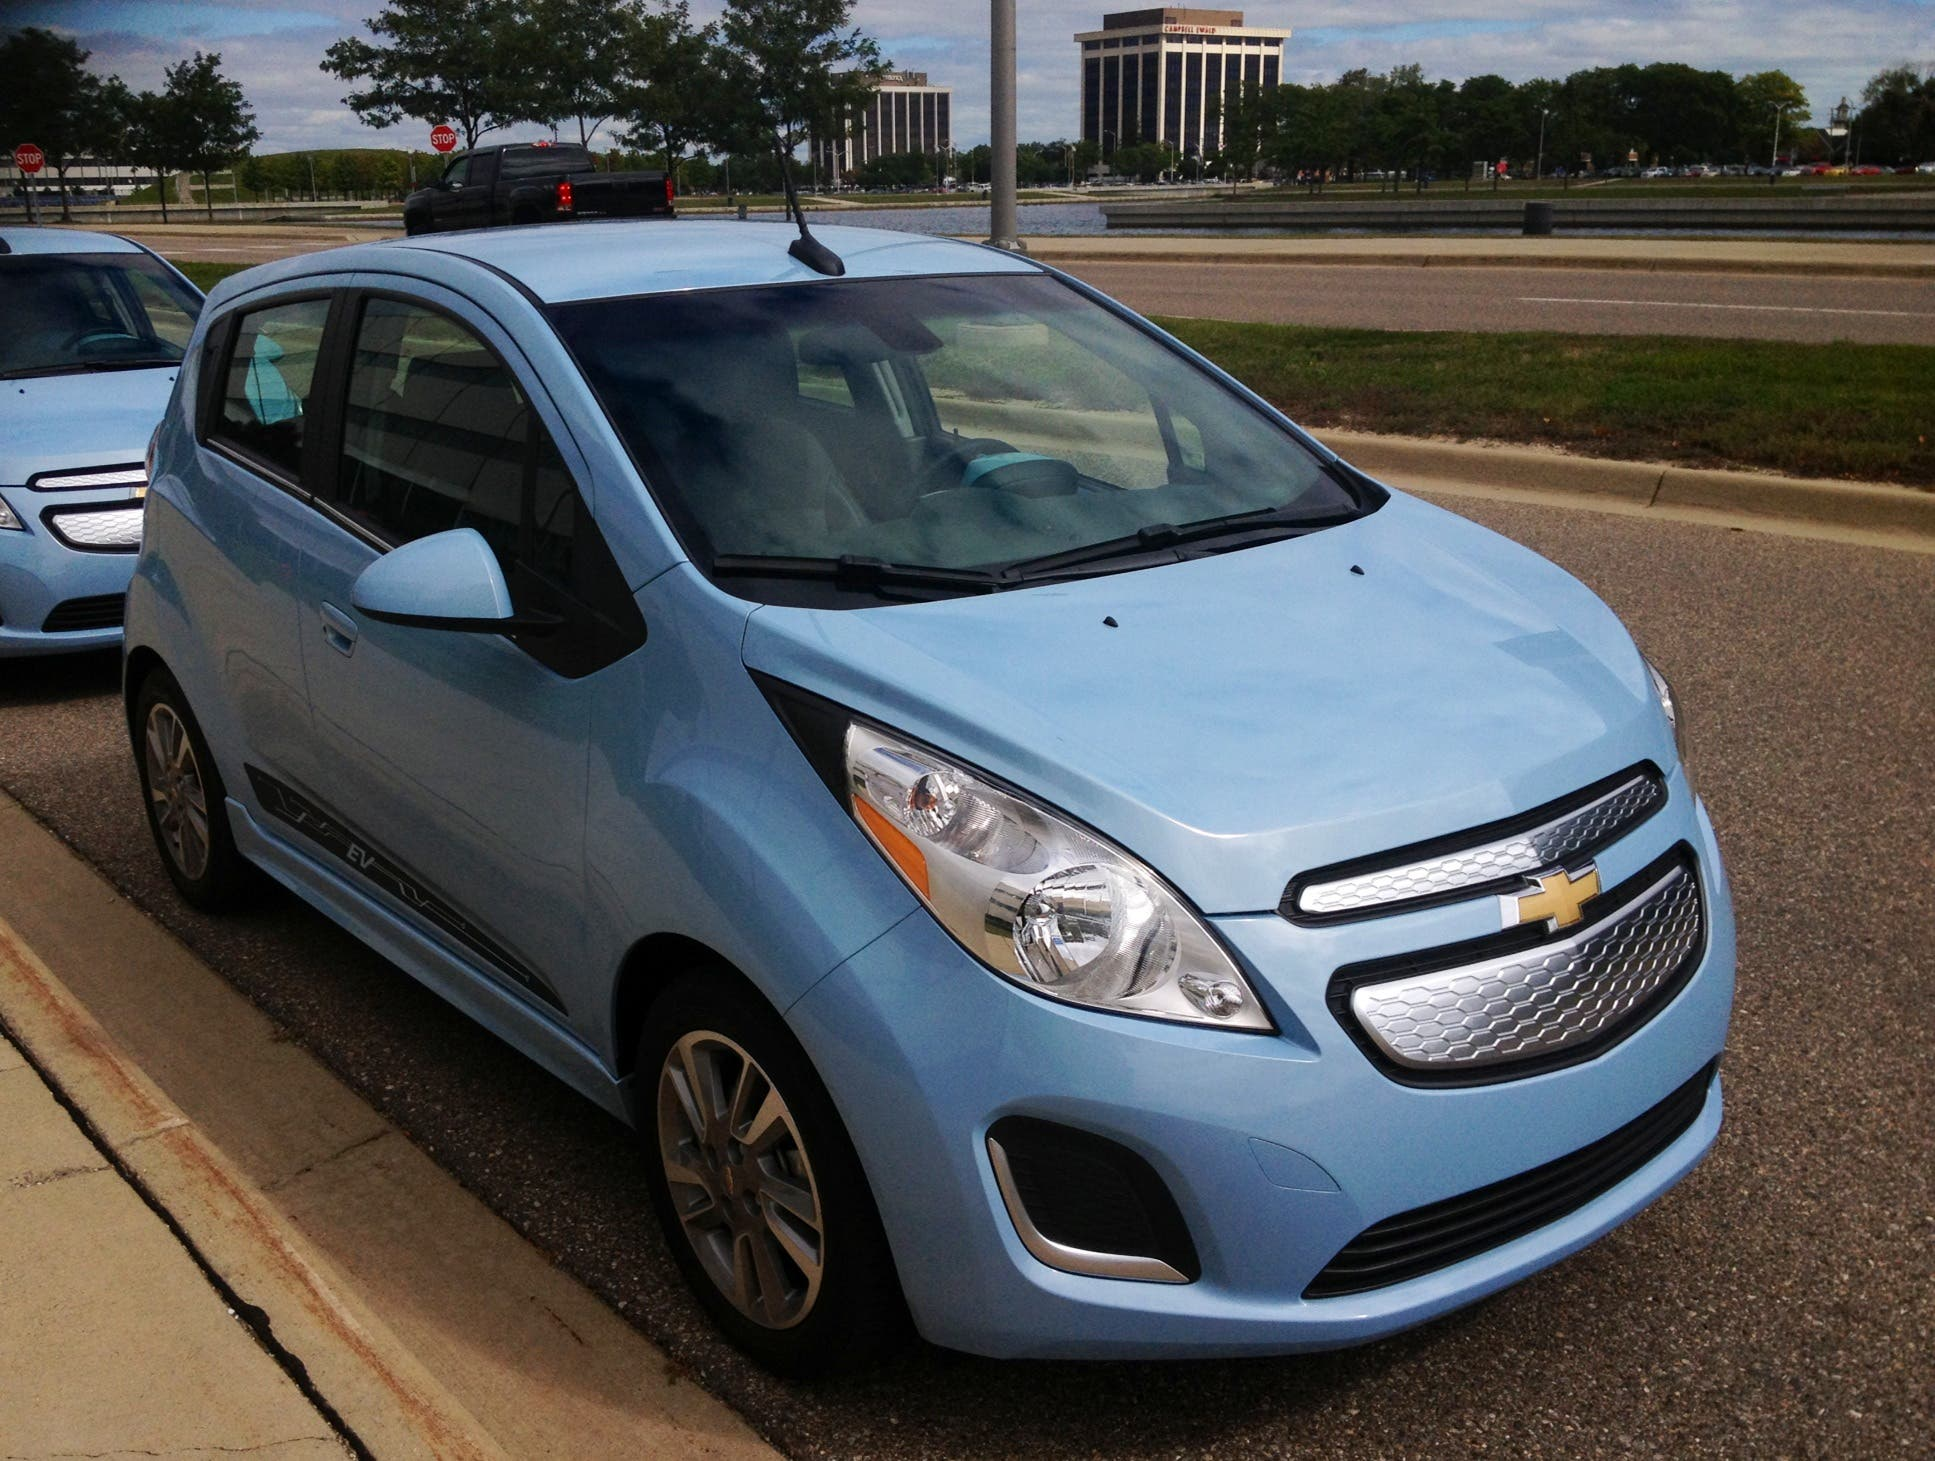 2014 Chevy Spark EV Test Drive CT Exclusive